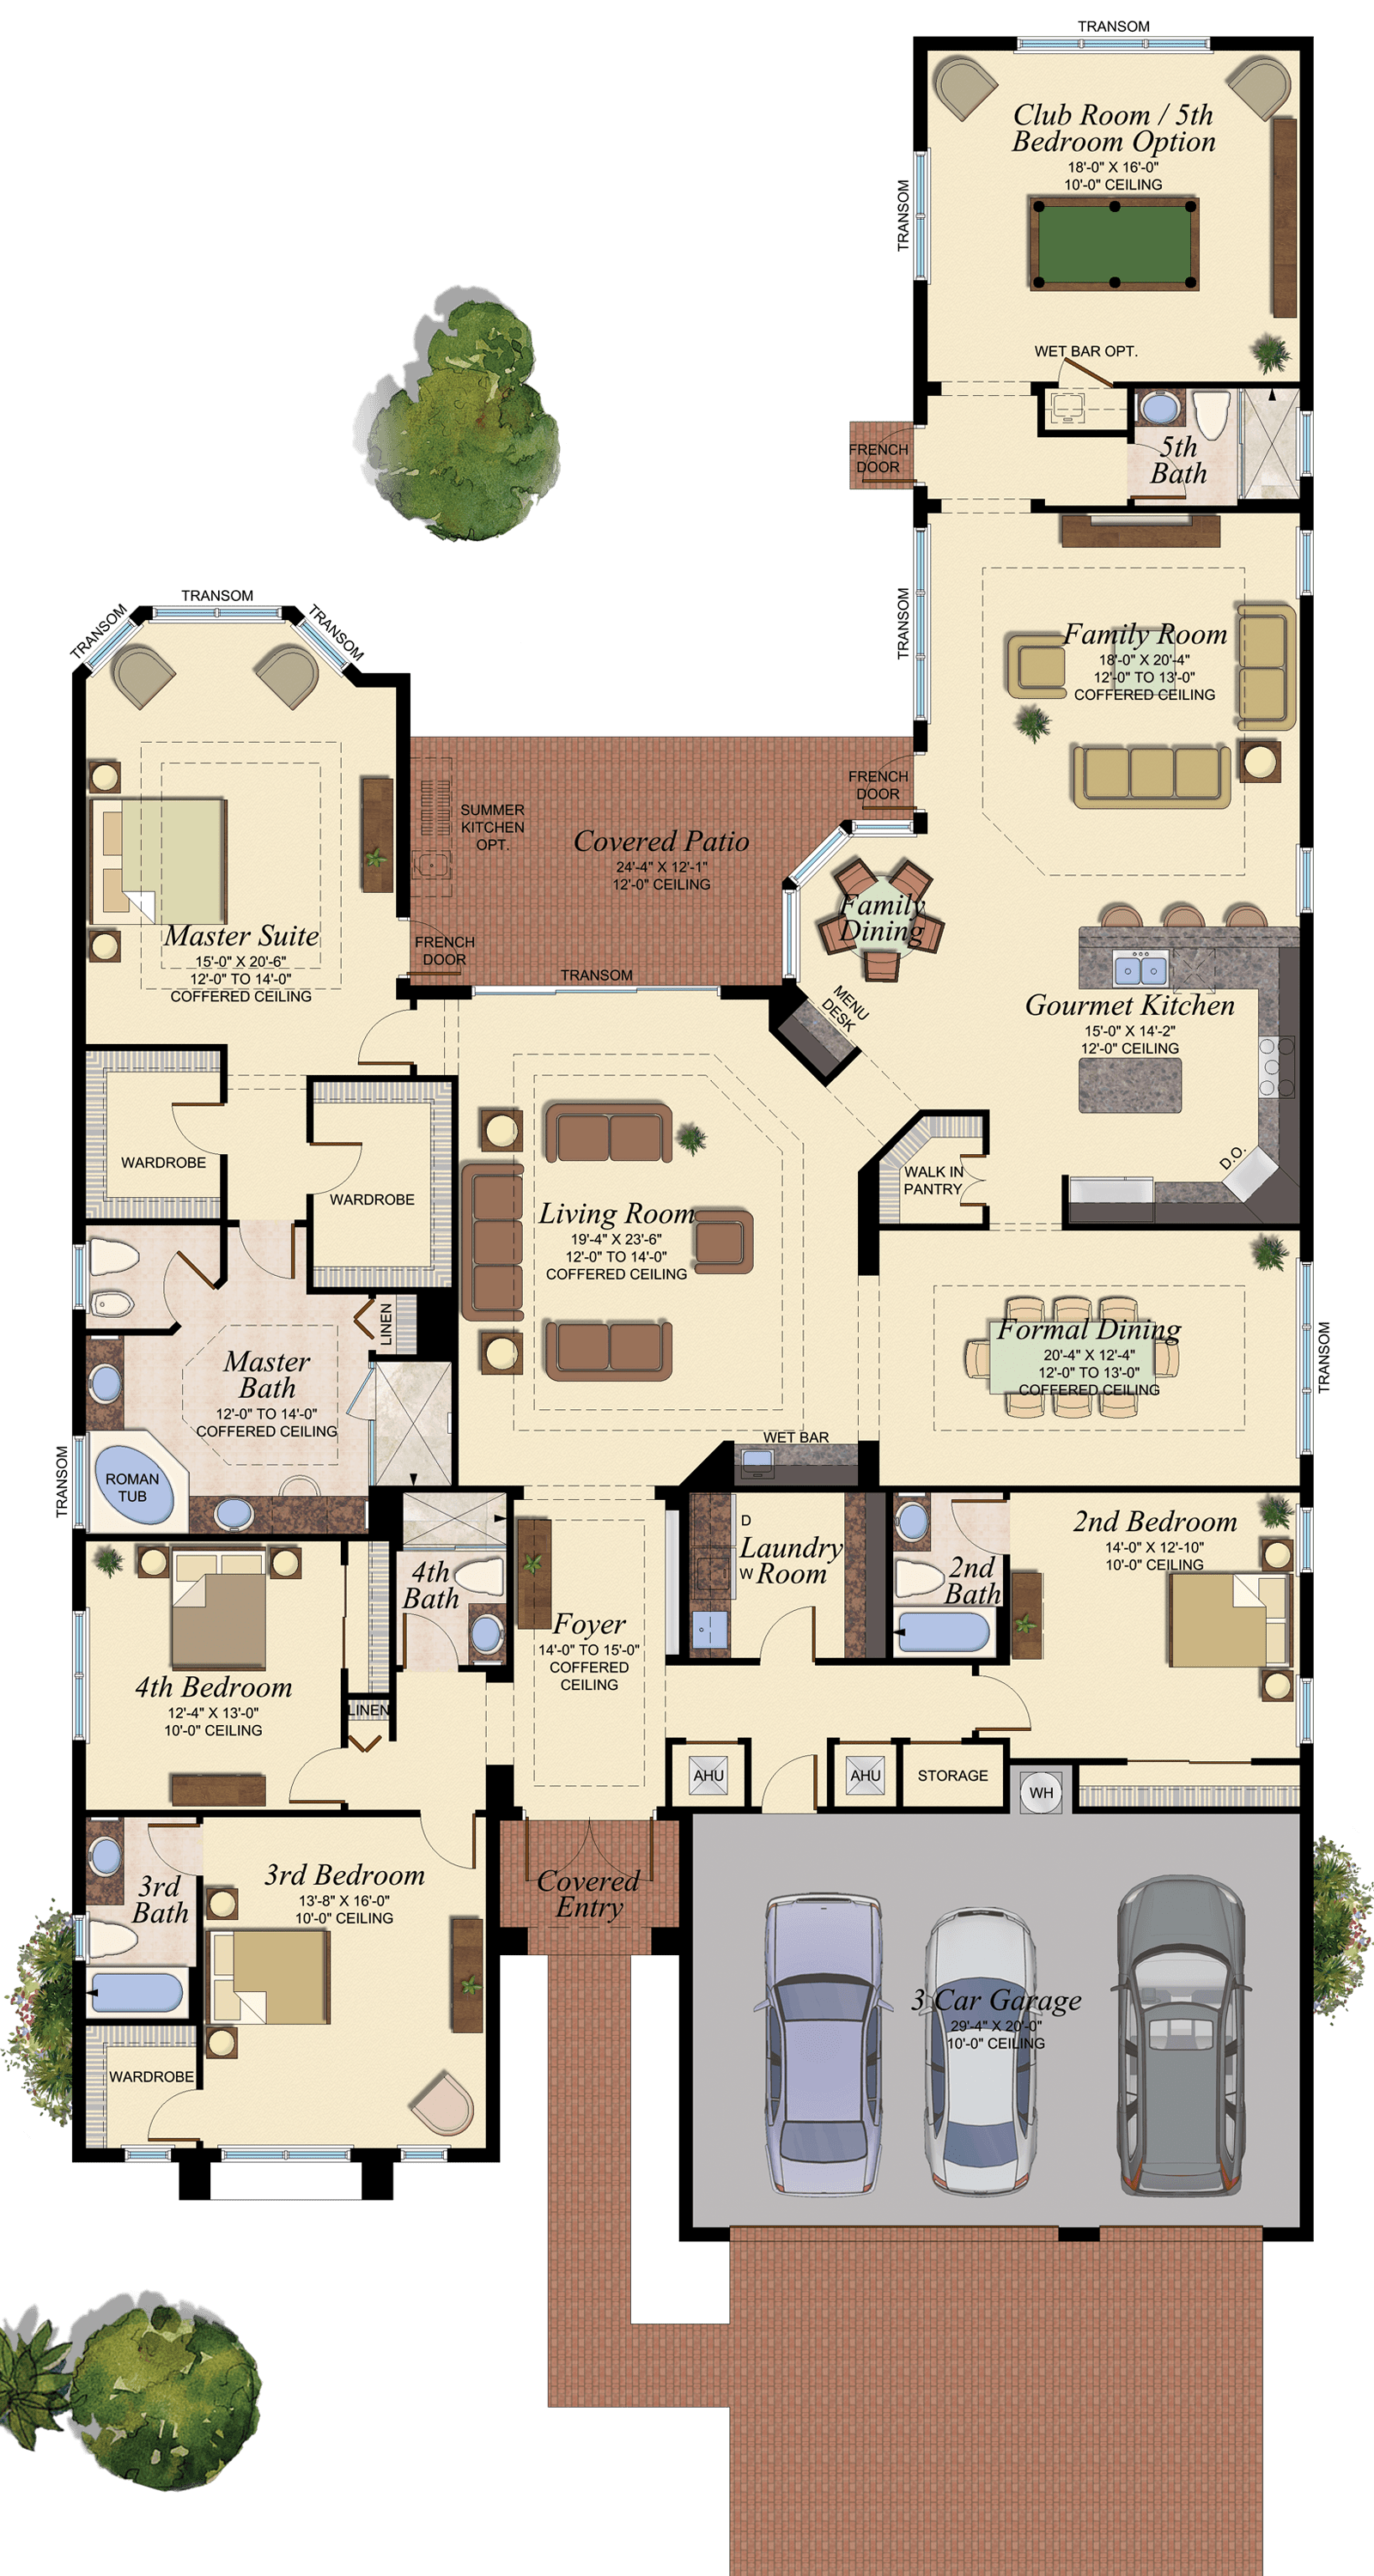 Gl Homes House Construction Plan My House Plans House Layout Plans